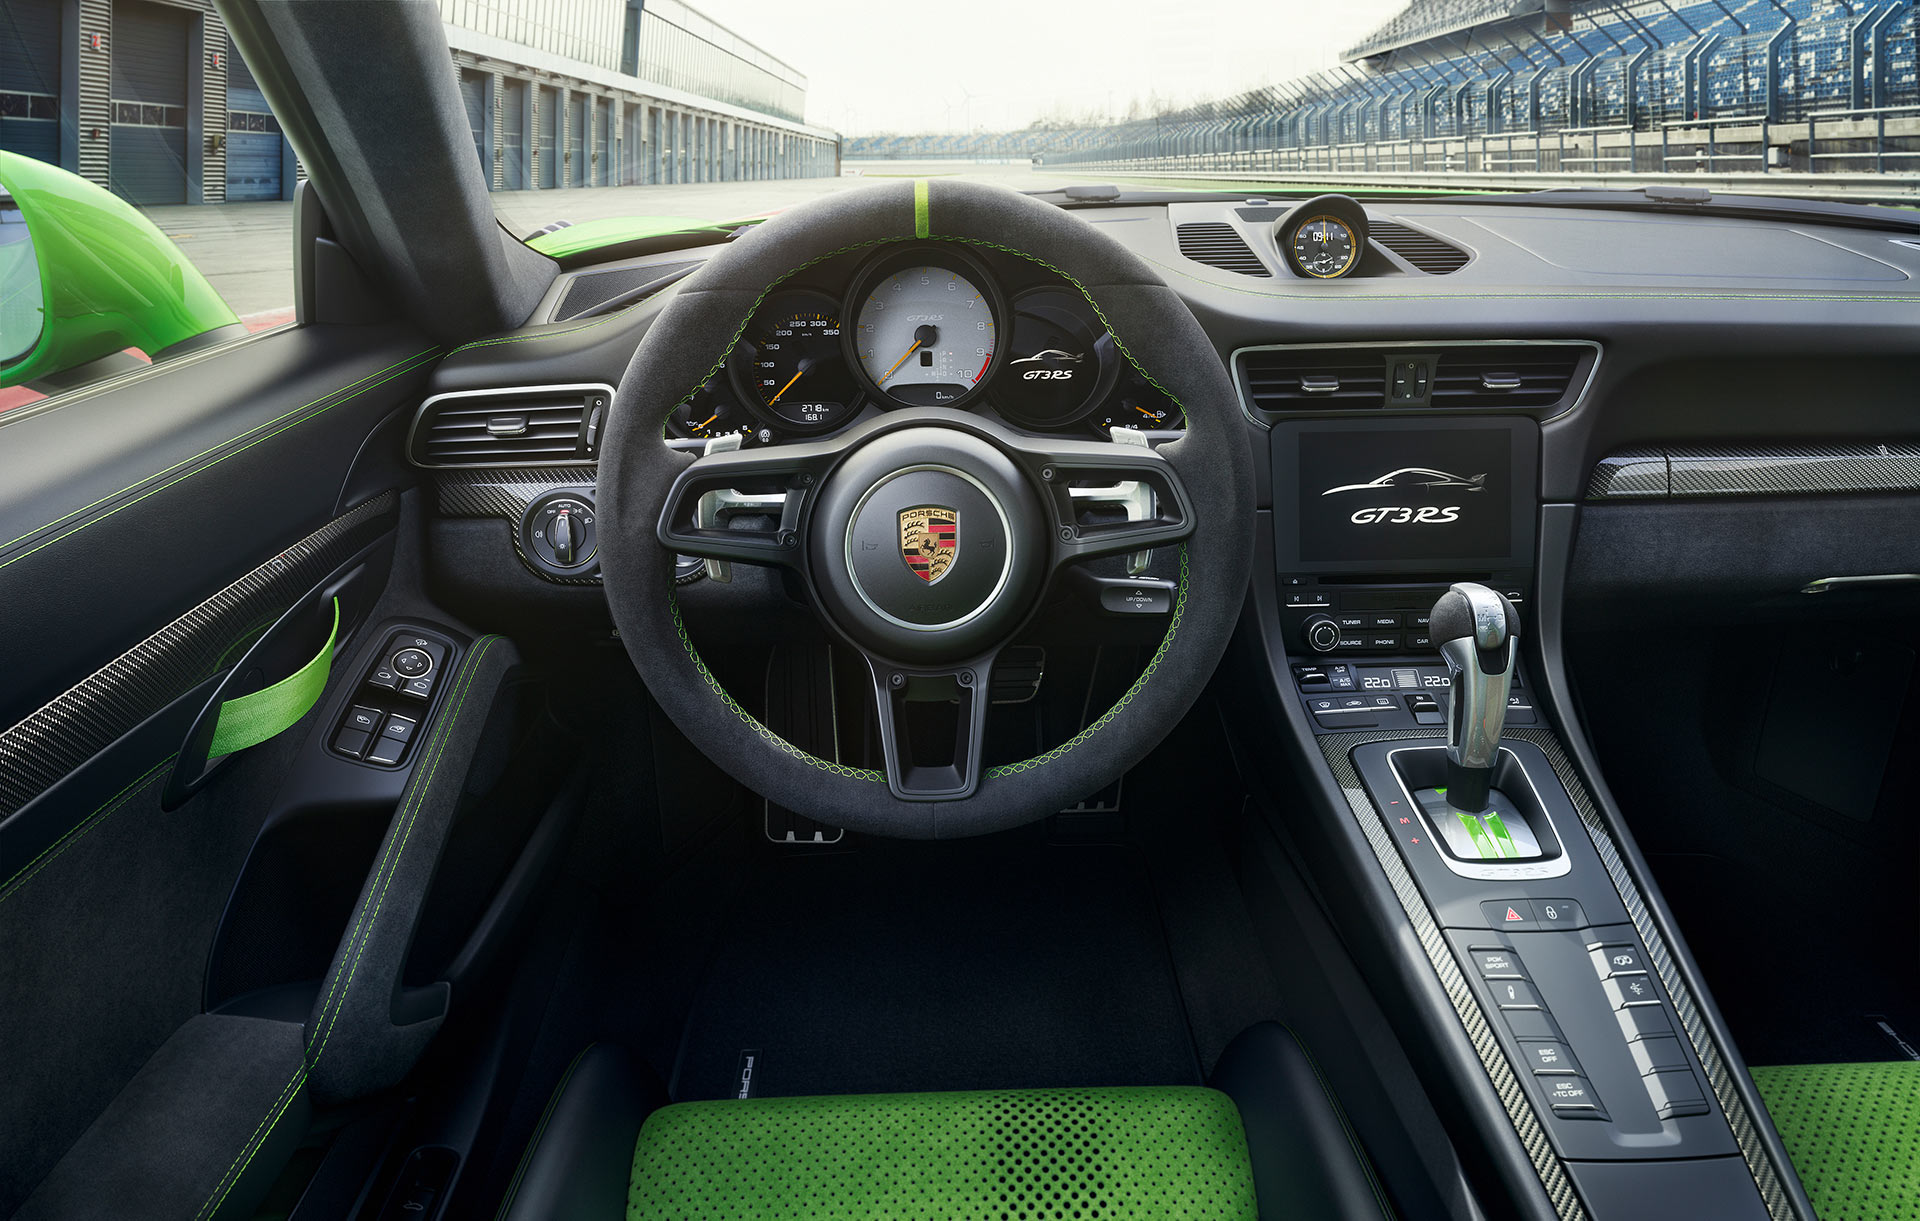 PORSCHE_GT3_RS_Interieur